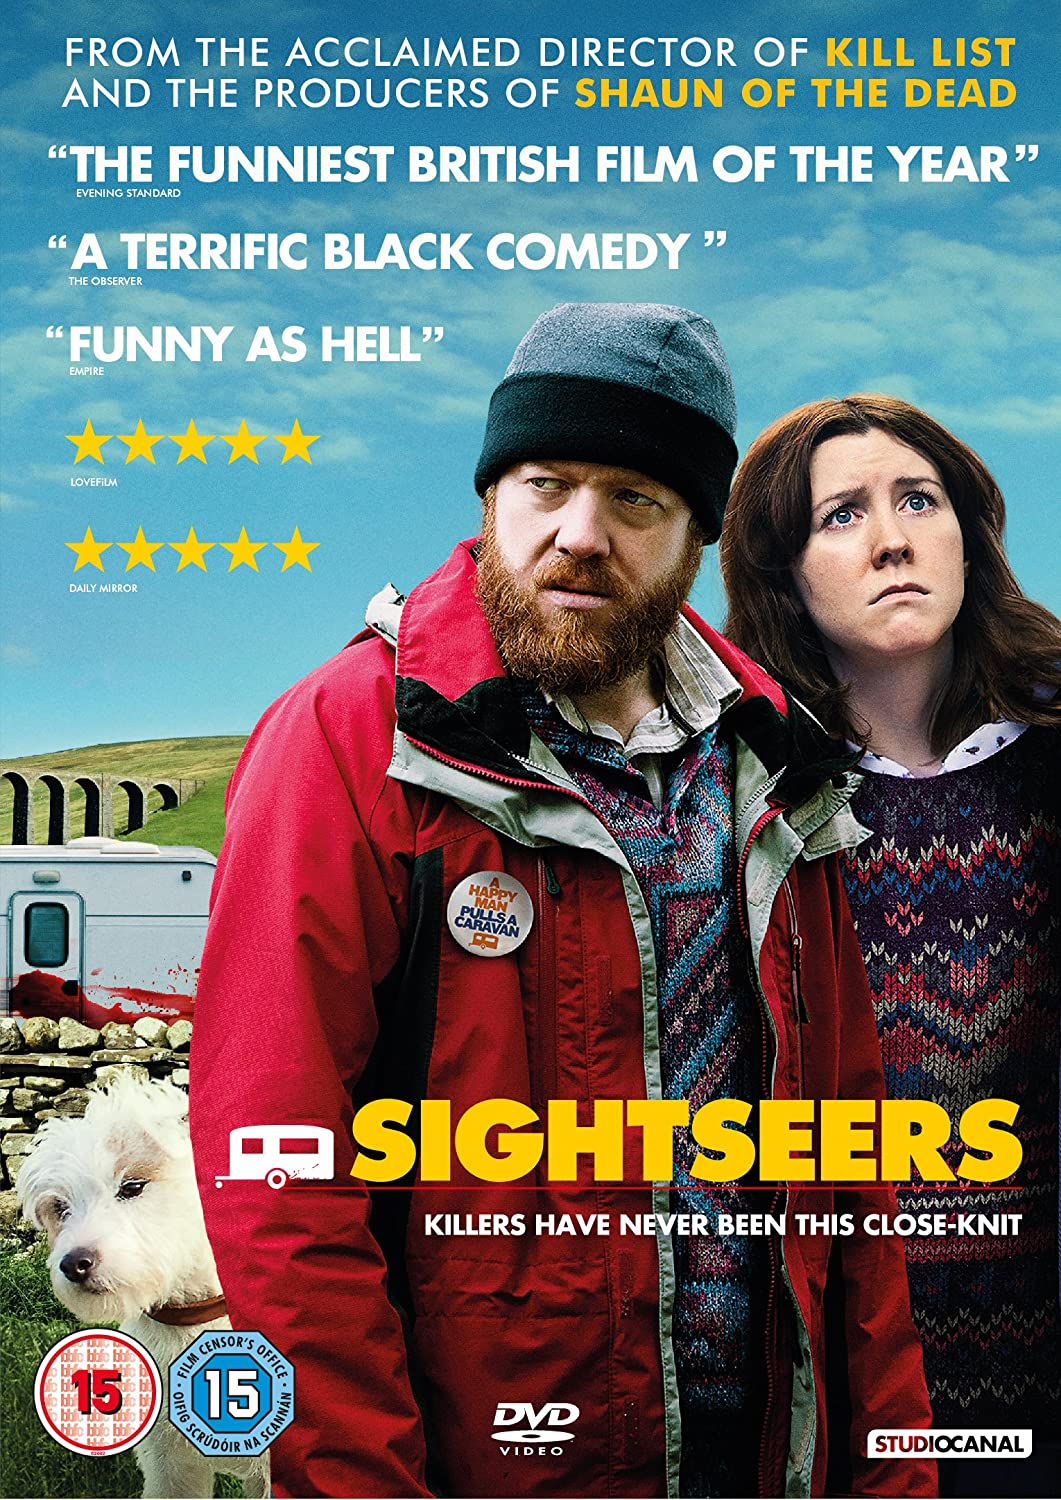 Sightseerers film review